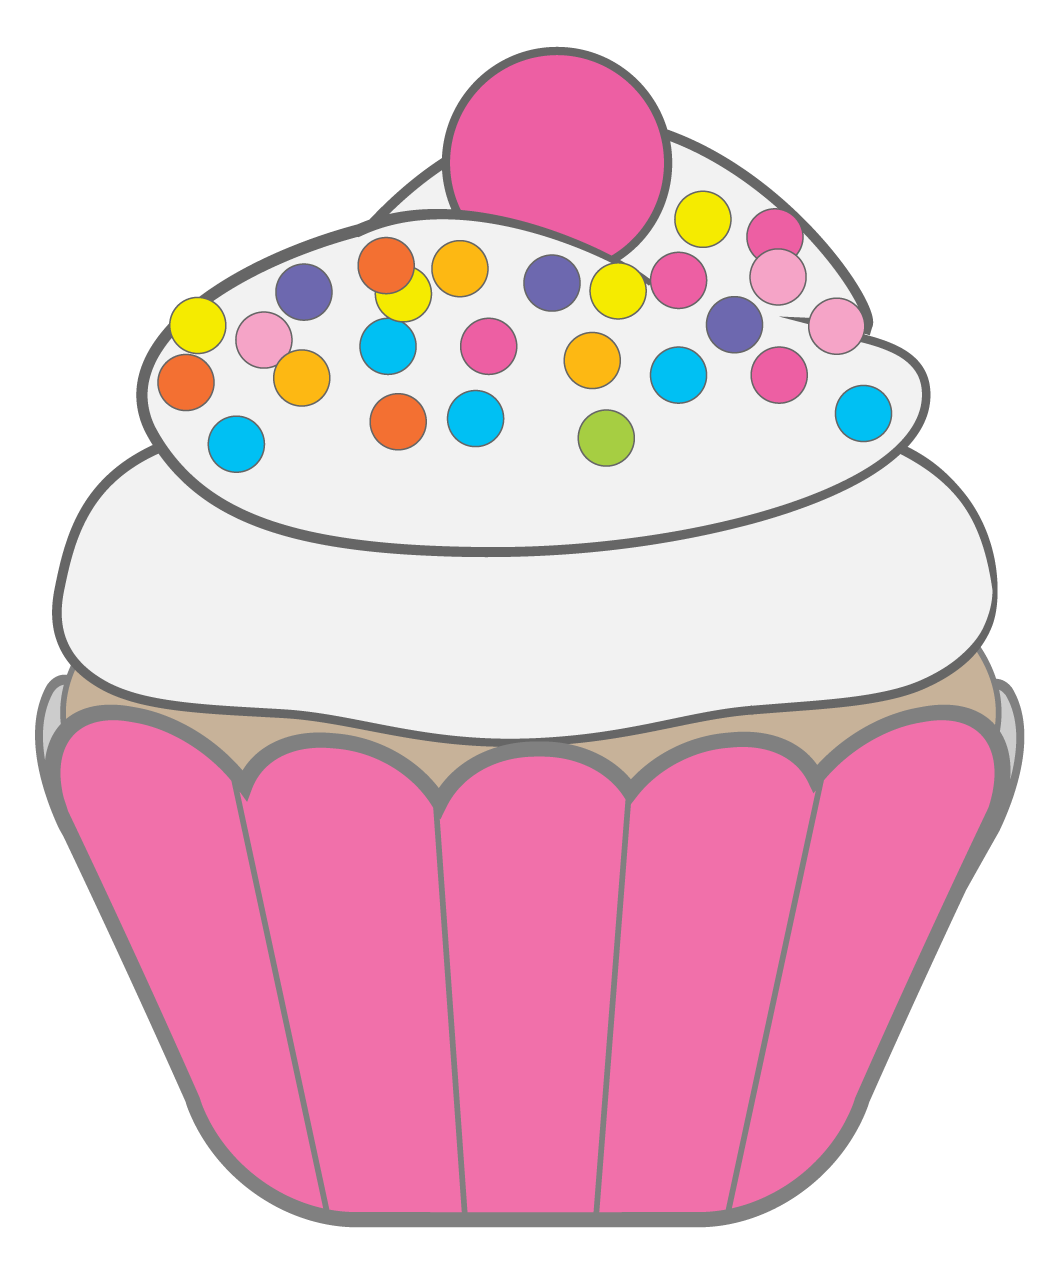 Free cakes clipart. Cupcake black and white